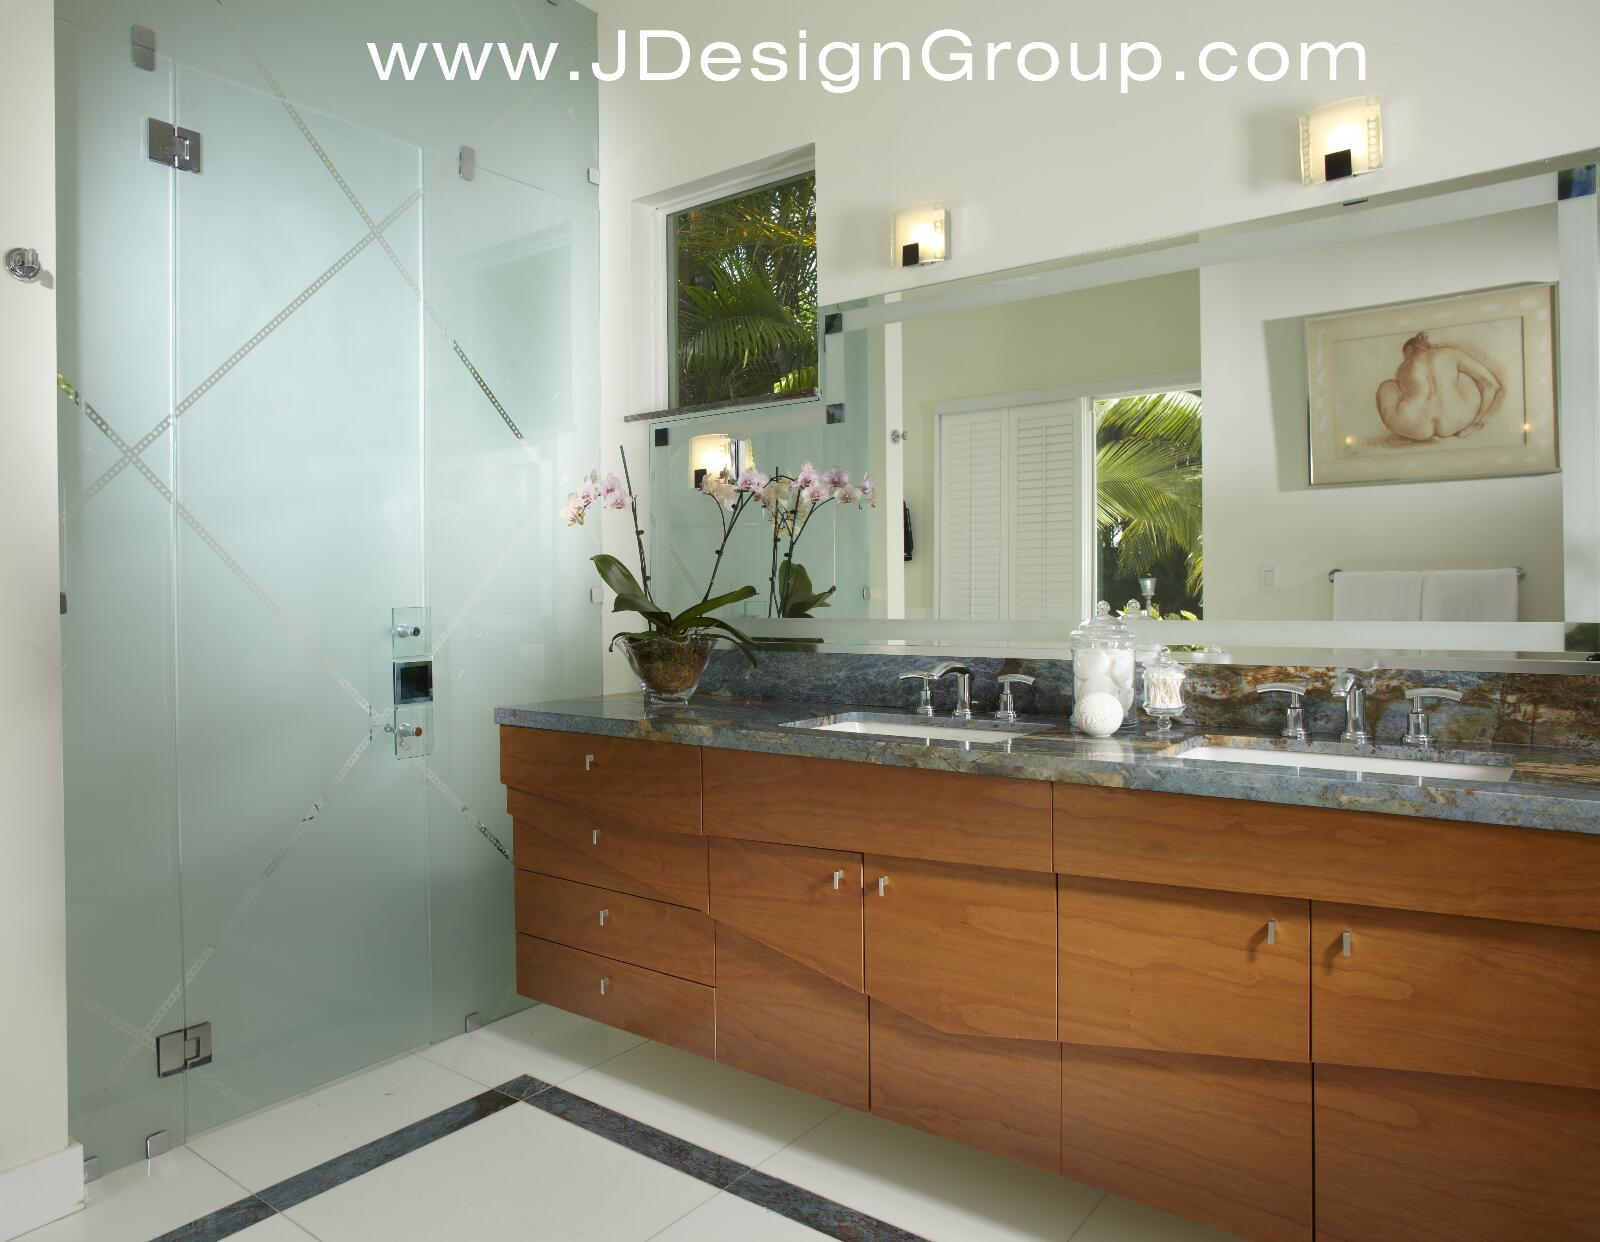 Bathroom Design Miami bathroom interior design services in miami